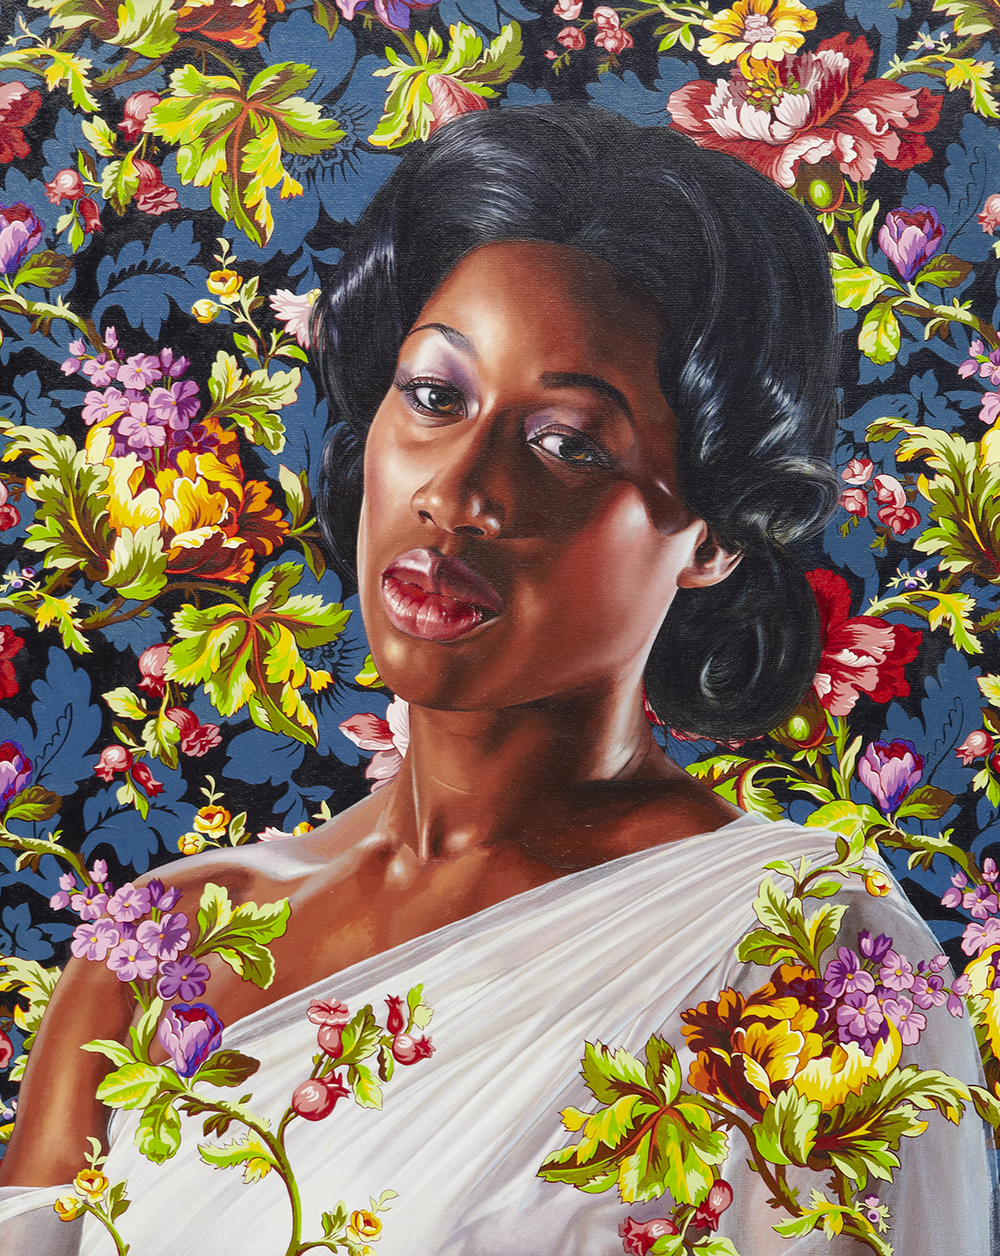 Economy of Grace; Artist: Kehinde Wiley; Model Candice Stevens